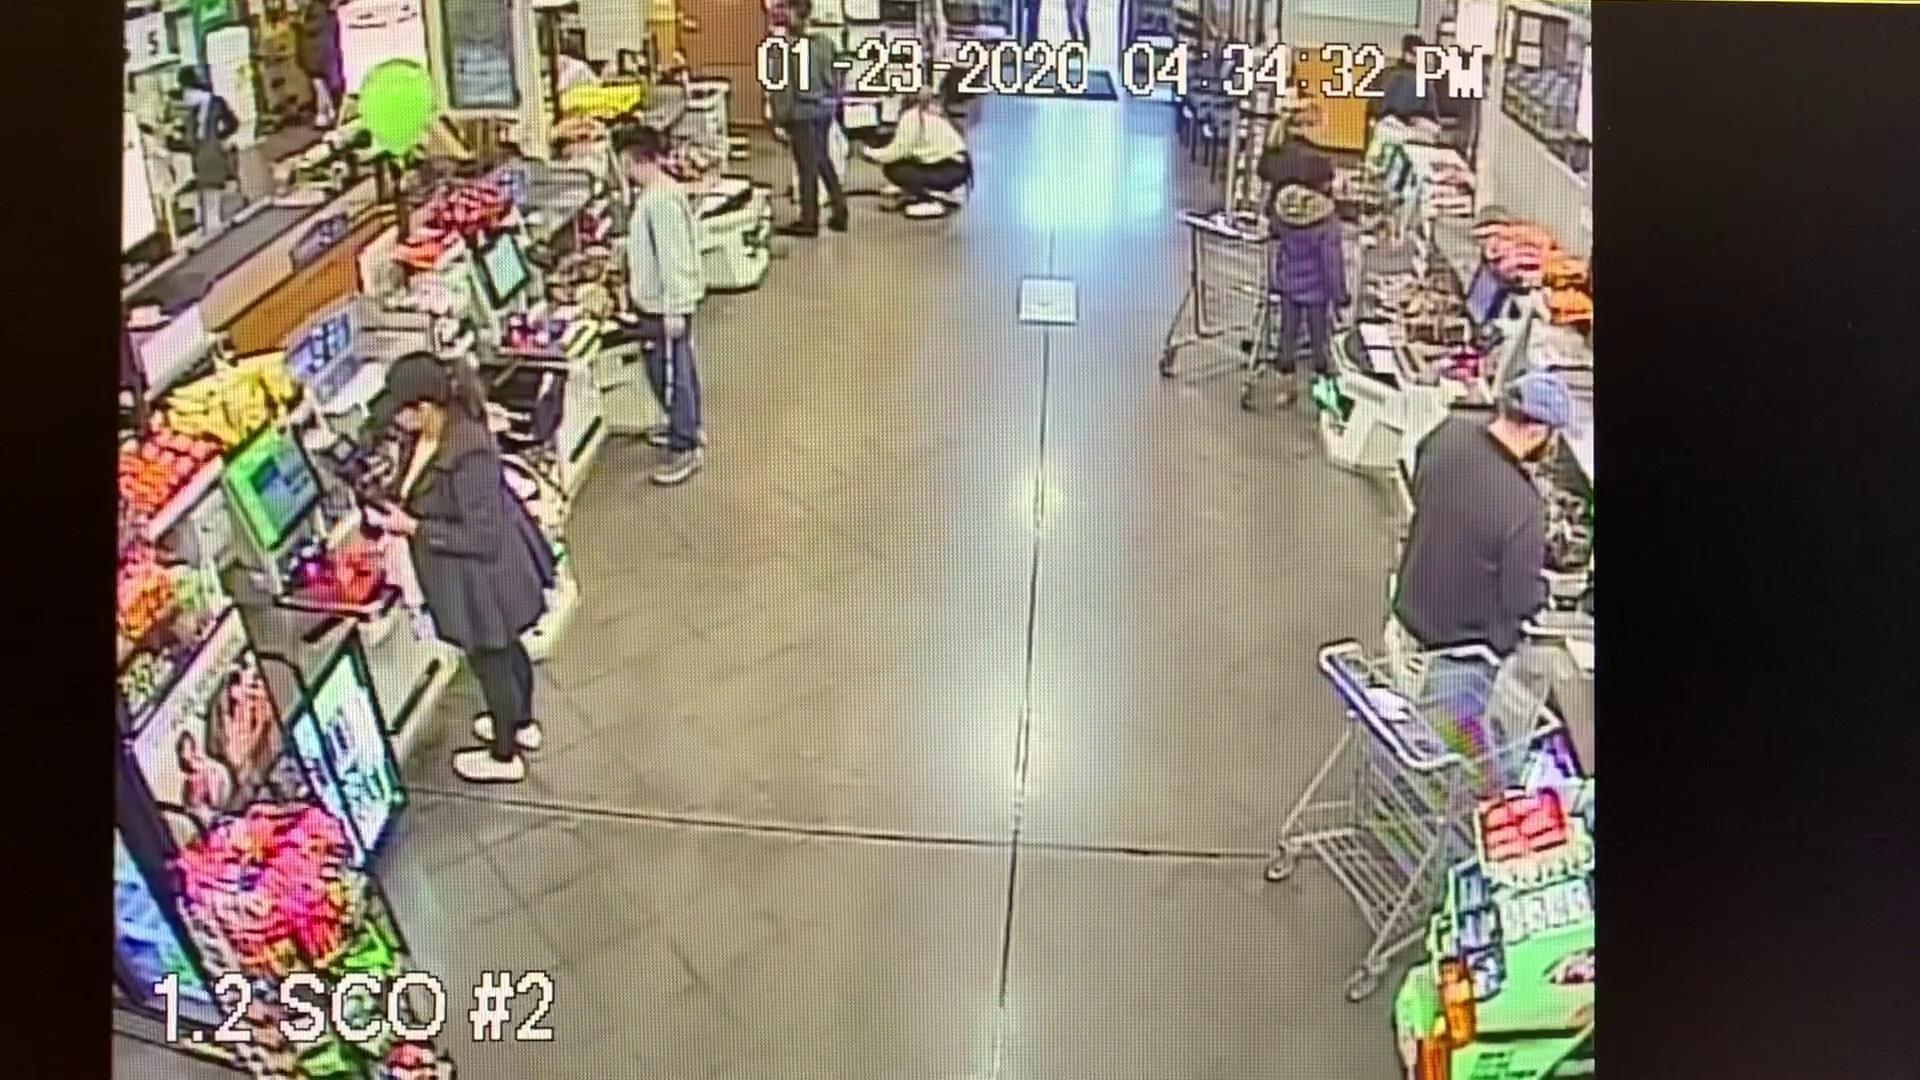 Watch Suspect Punches 76 Year Old Man At Dacula Grocery Store Gwinnettdailypost Com